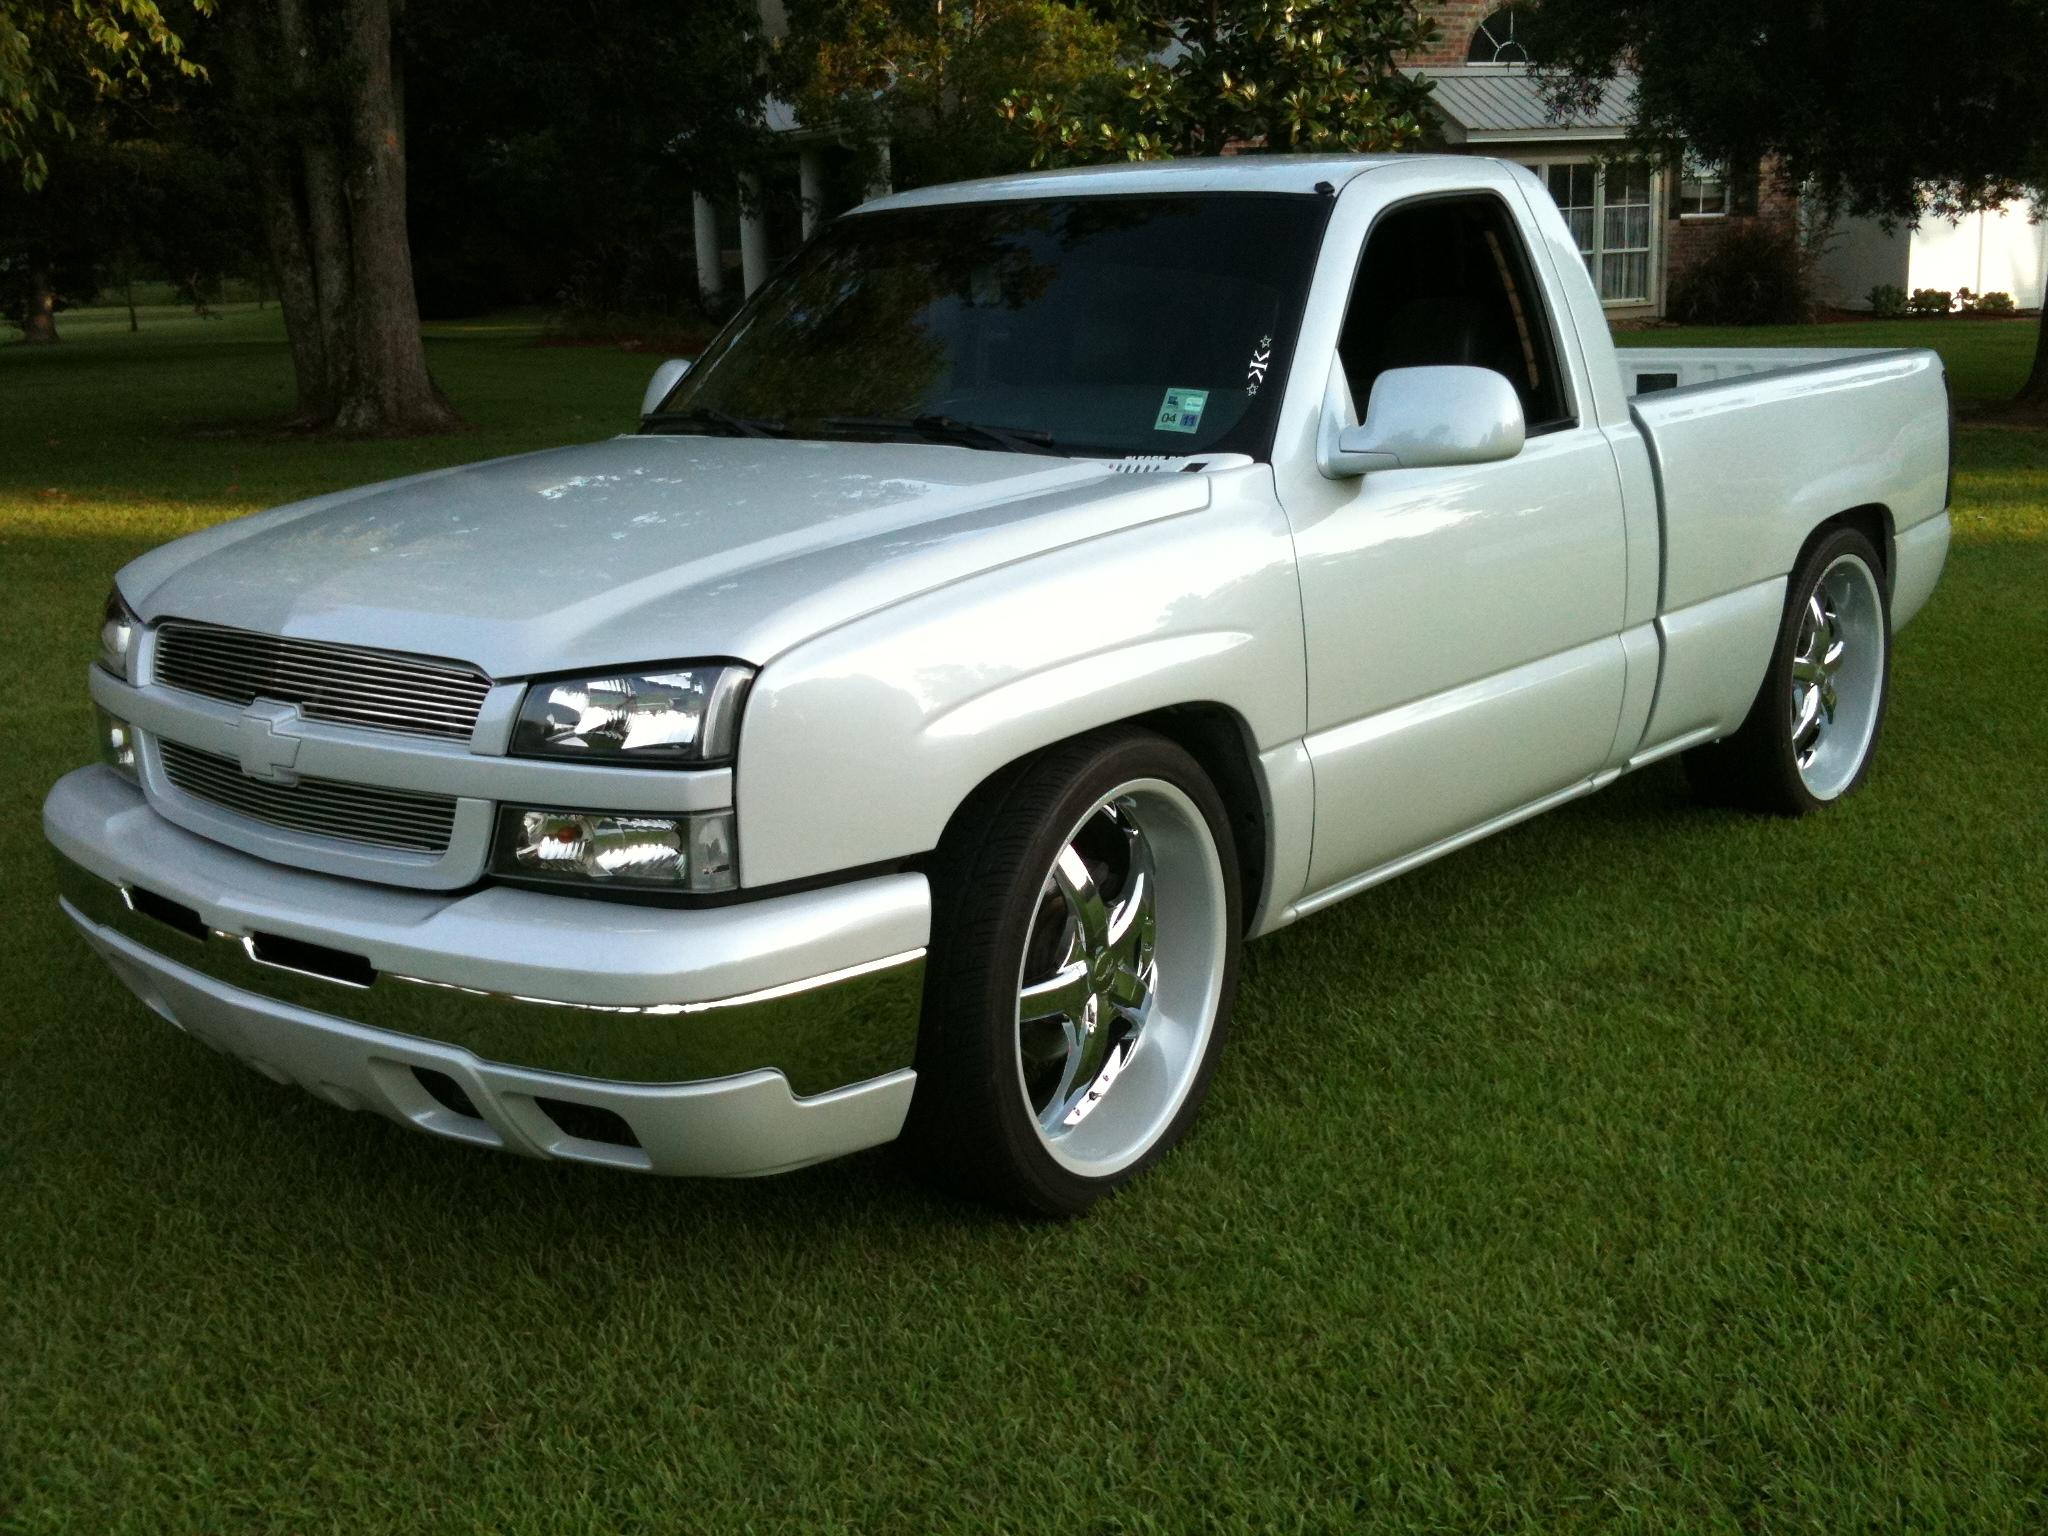 2005 chevrolet silverado 1500 regular cab view all 2005 chevrolet silverado 1500 regular cab. Black Bedroom Furniture Sets. Home Design Ideas